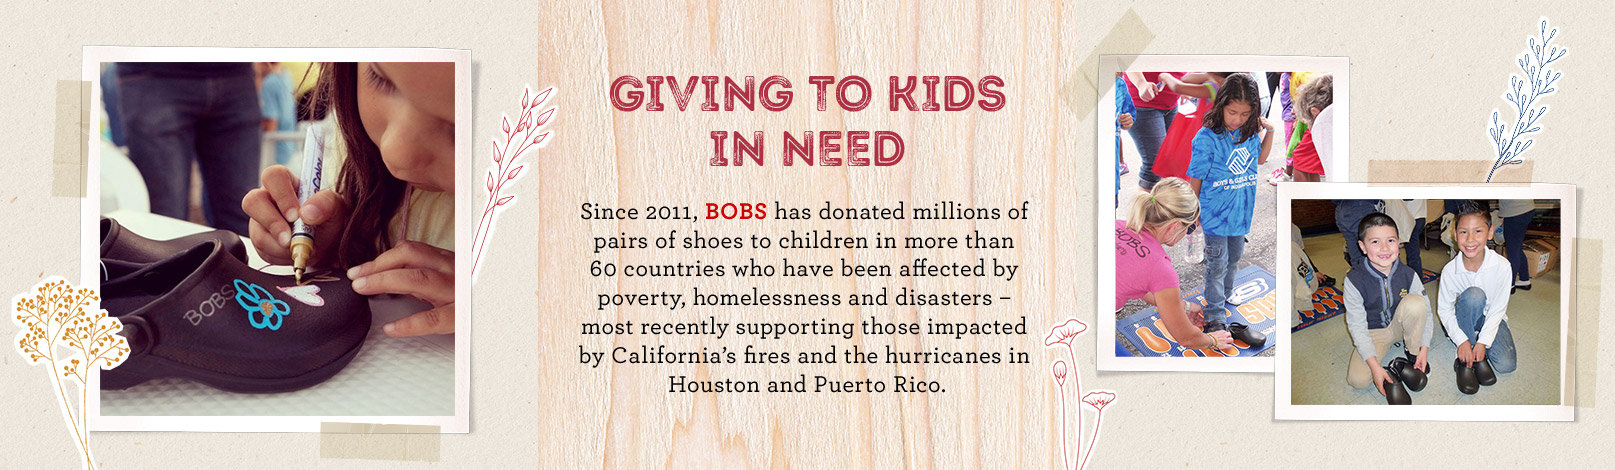 Giving to Kids in Need